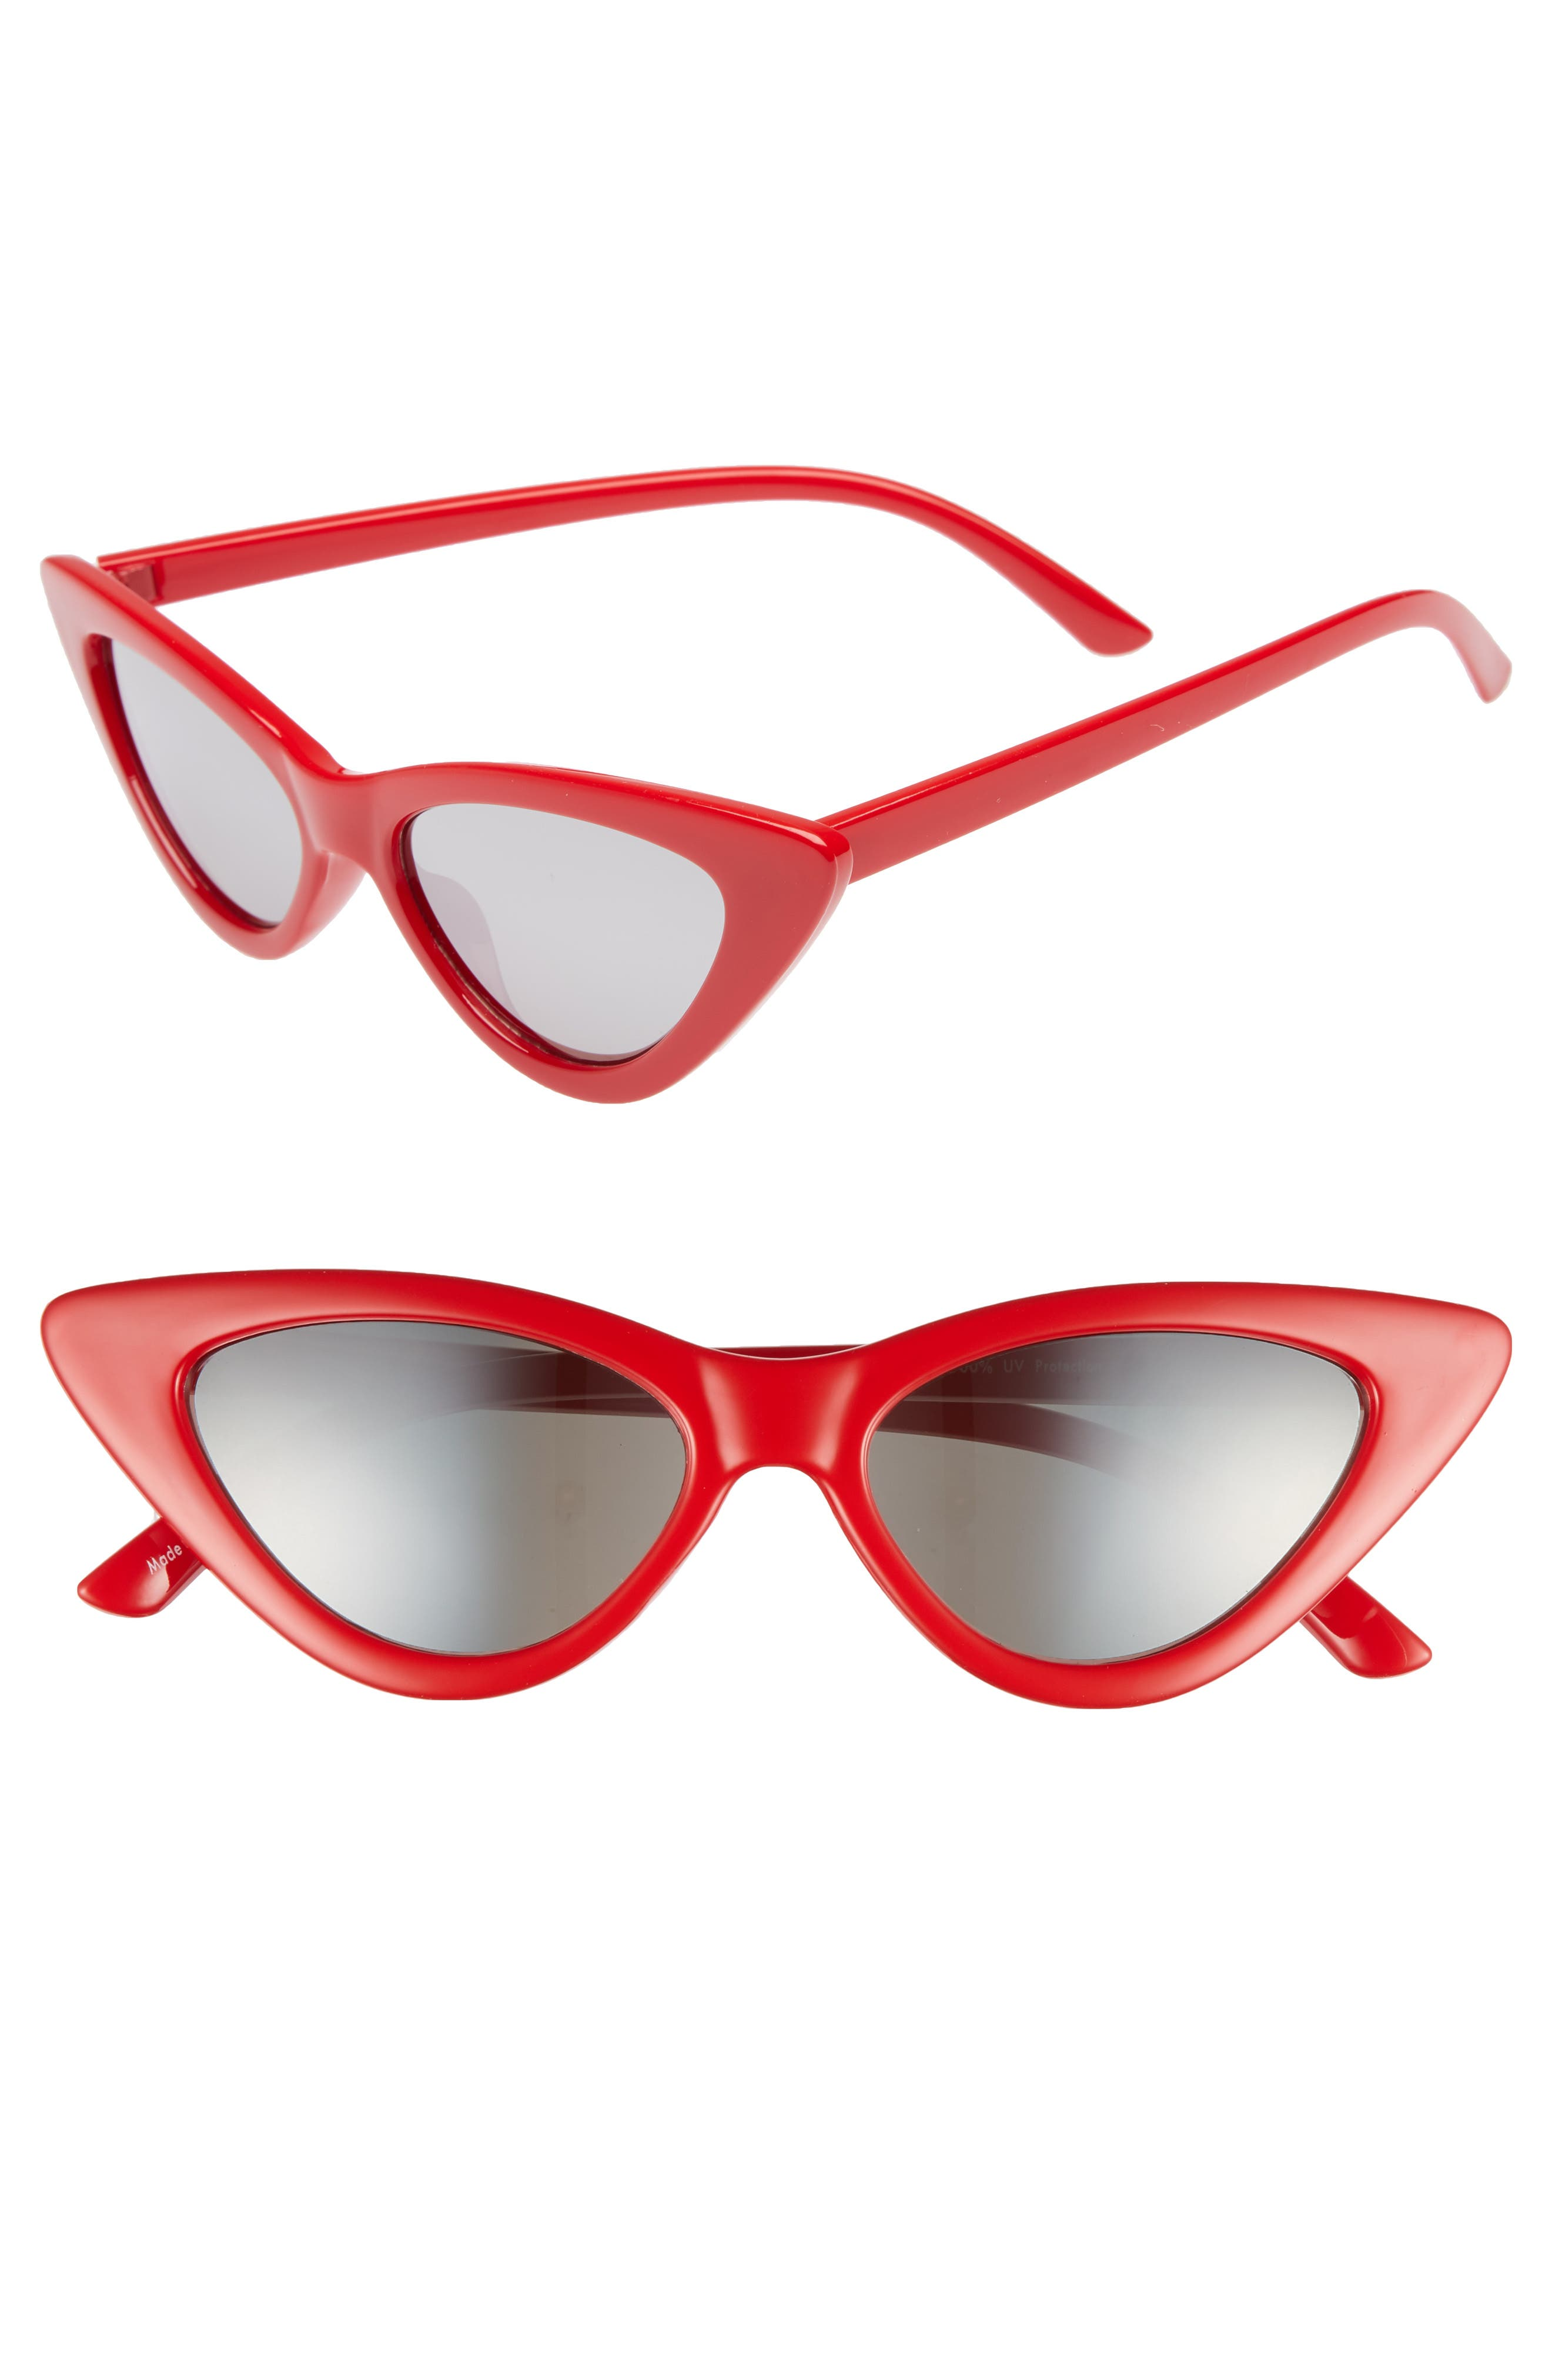 62mm Cat Eye Sunglasses,                         Main,                         color, Red/ Silver